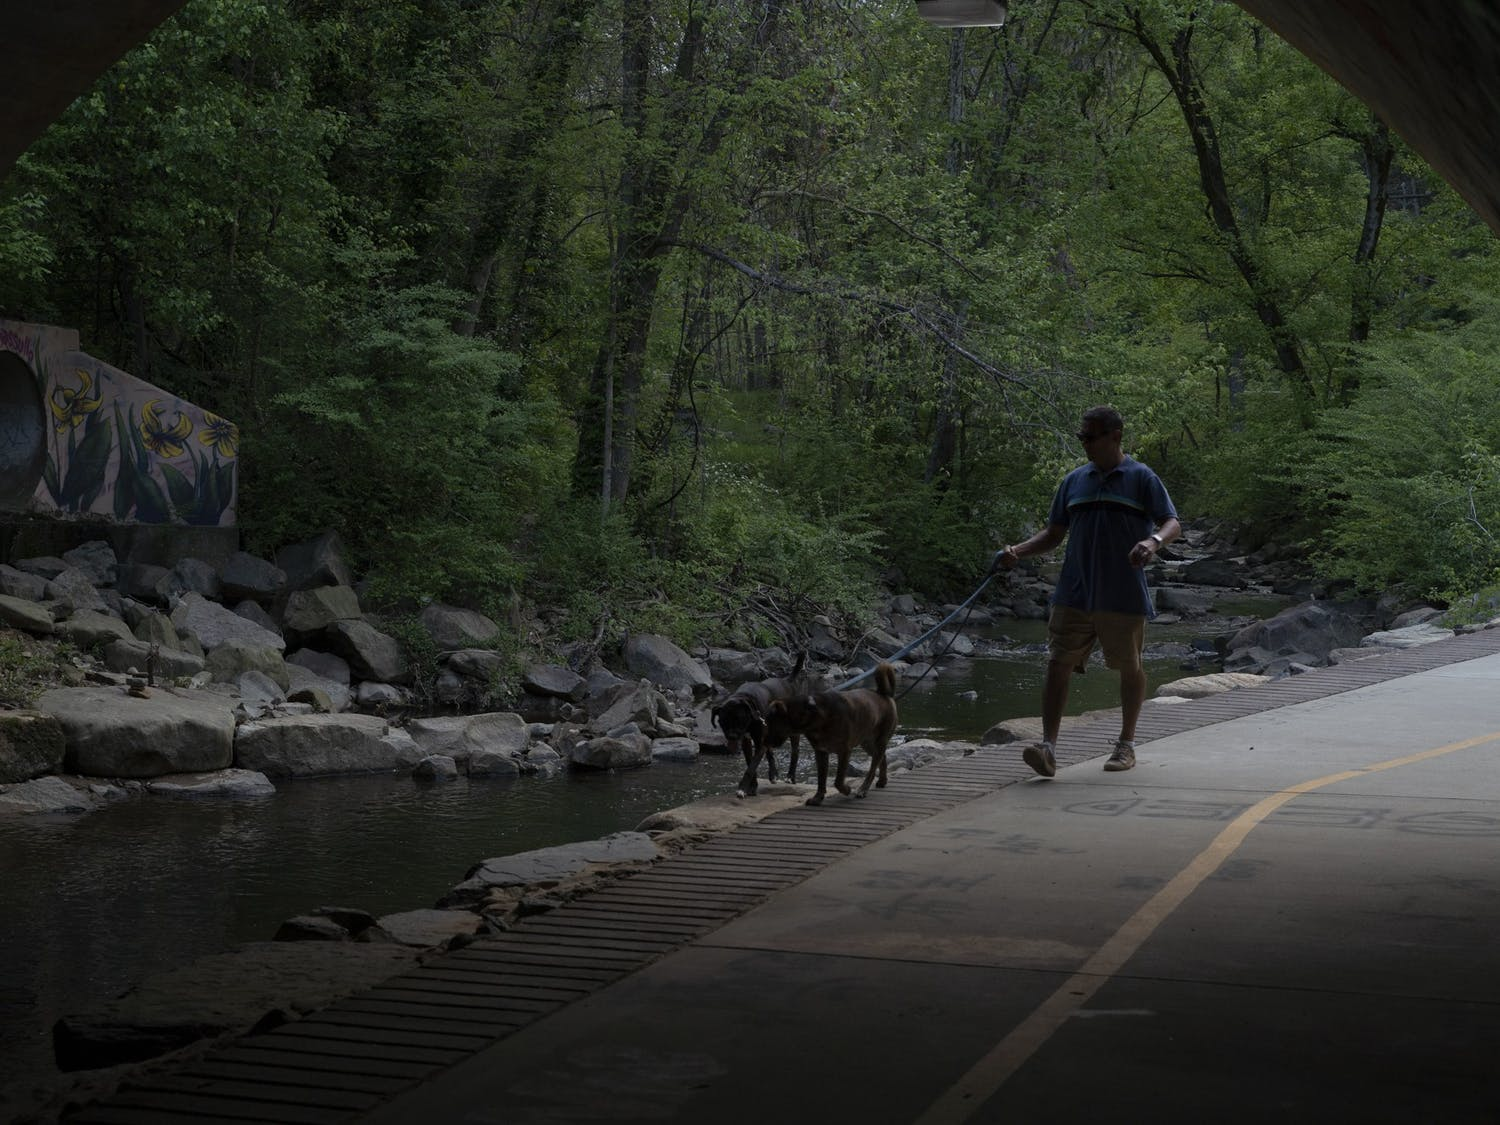 A man walks his dogs by the creek at Umstead Park on April 13, 2021.